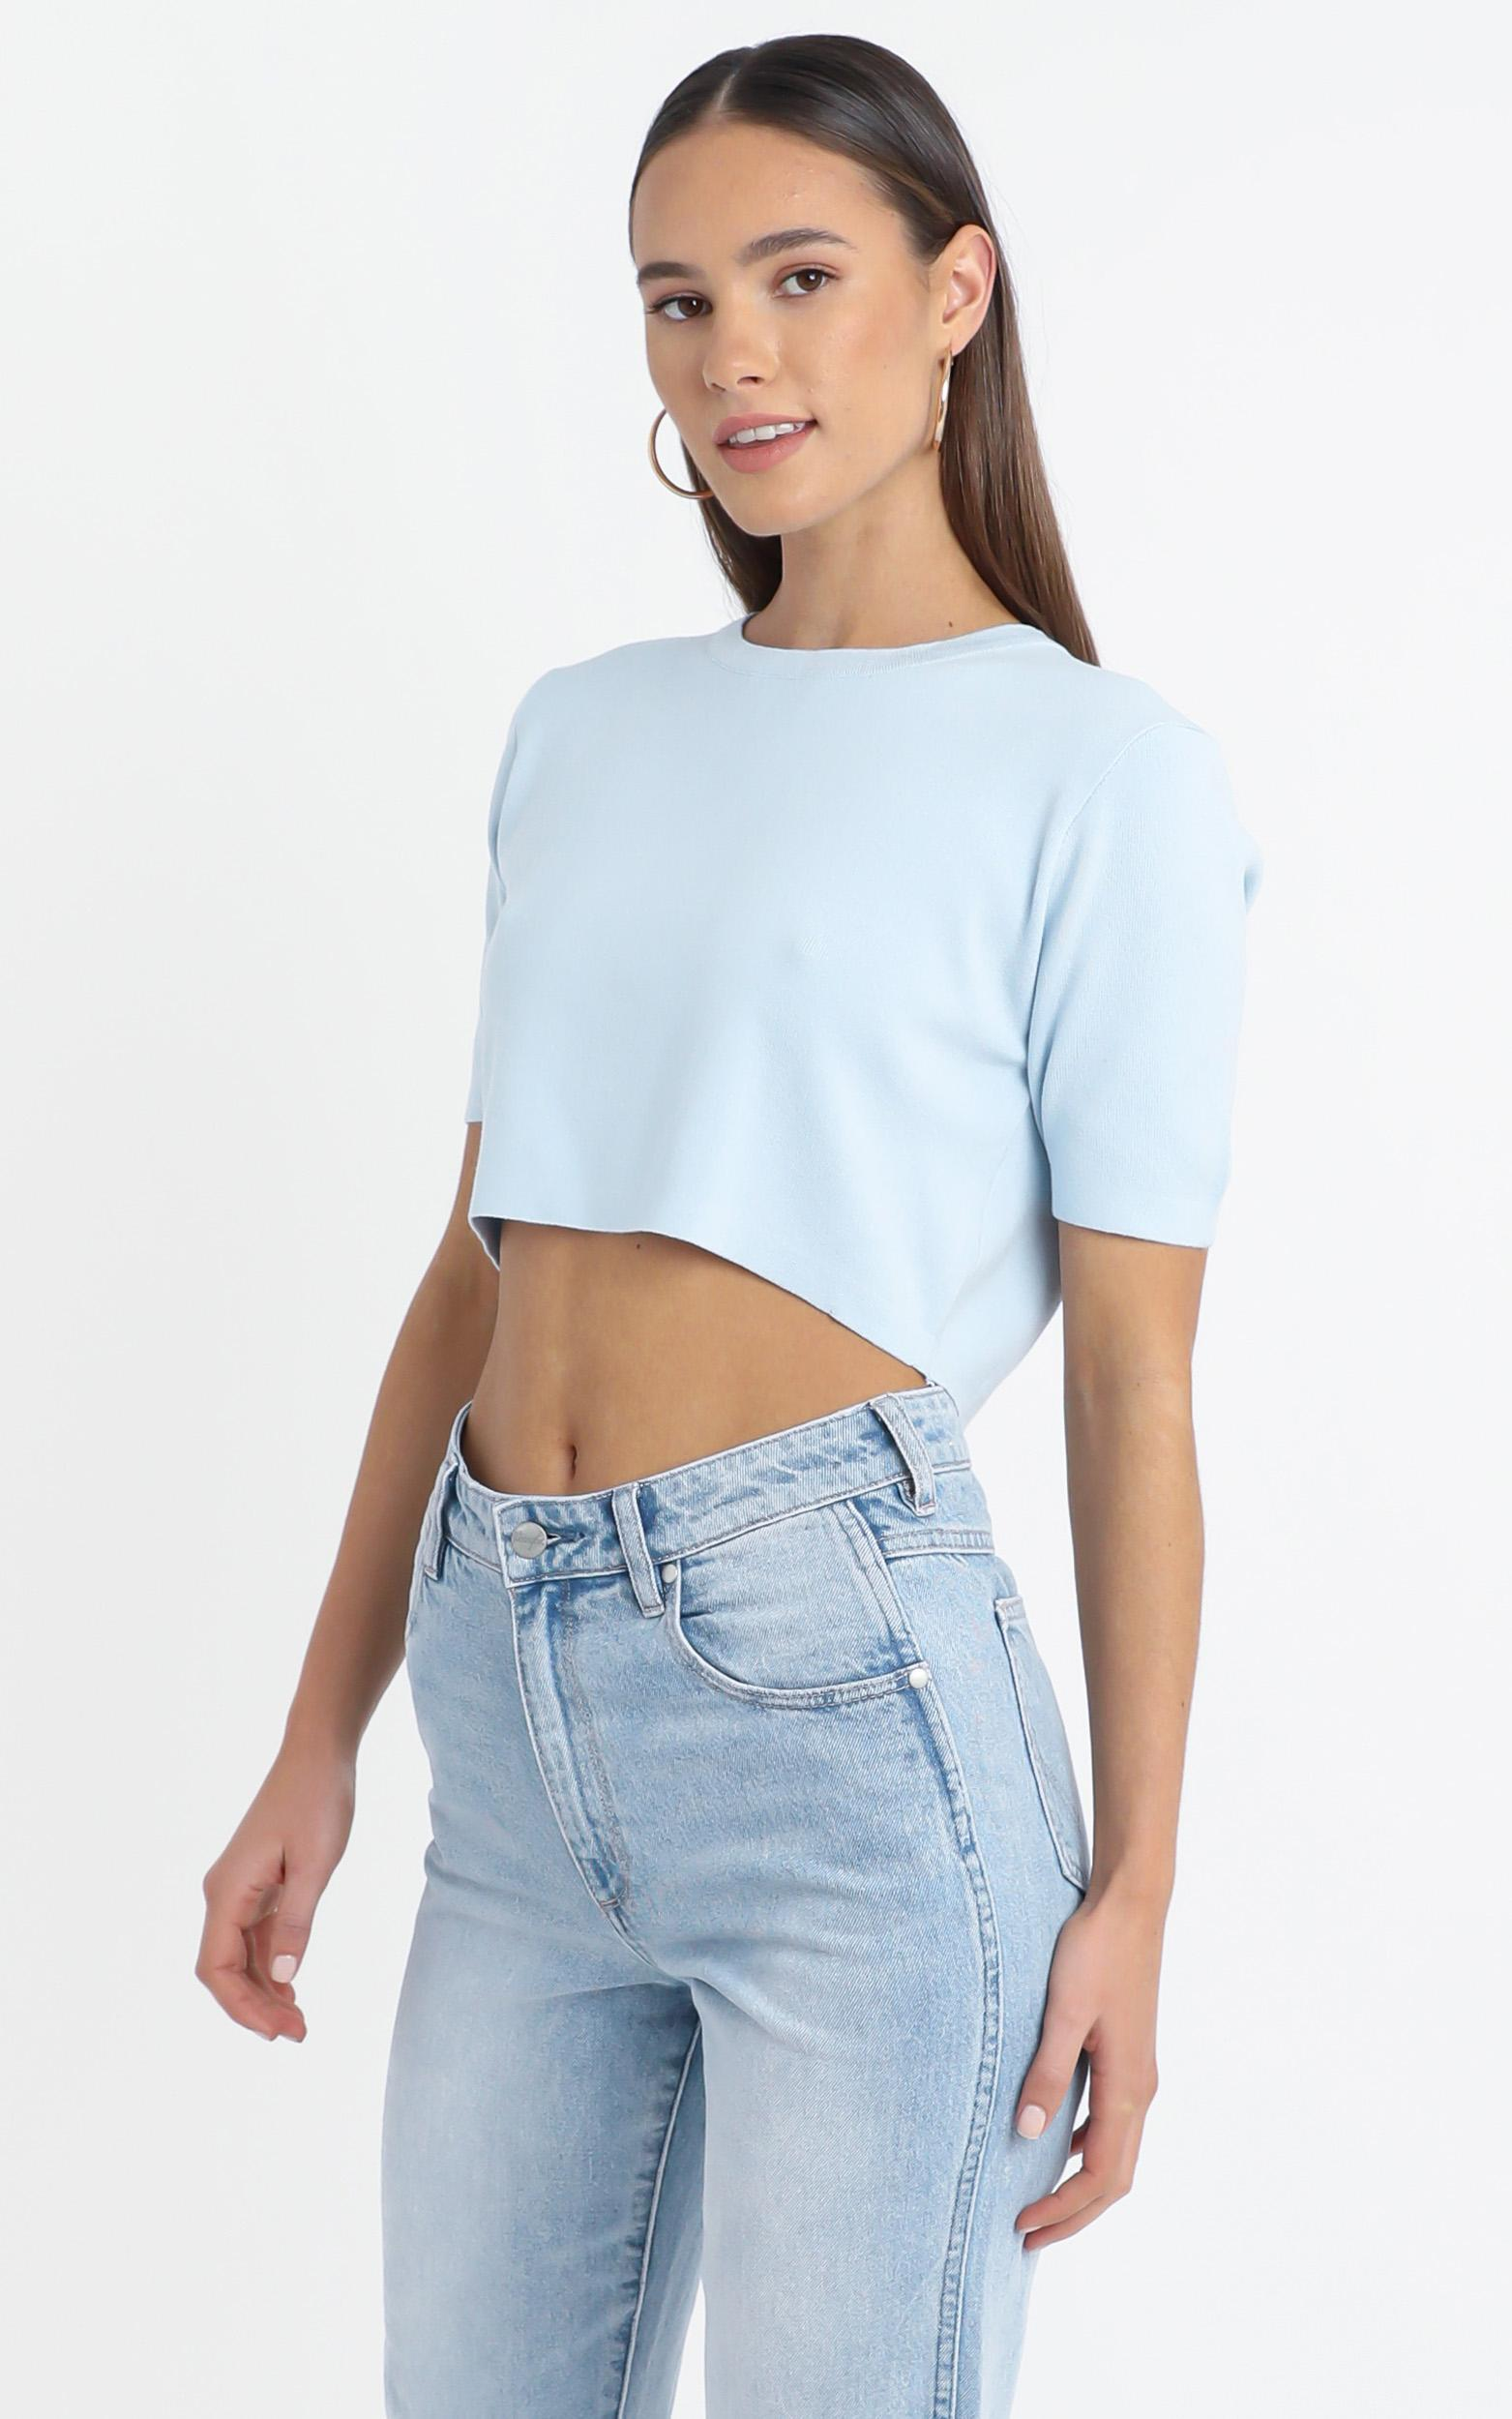 Augusta Top in Blue - M/L, Blue, hi-res image number null